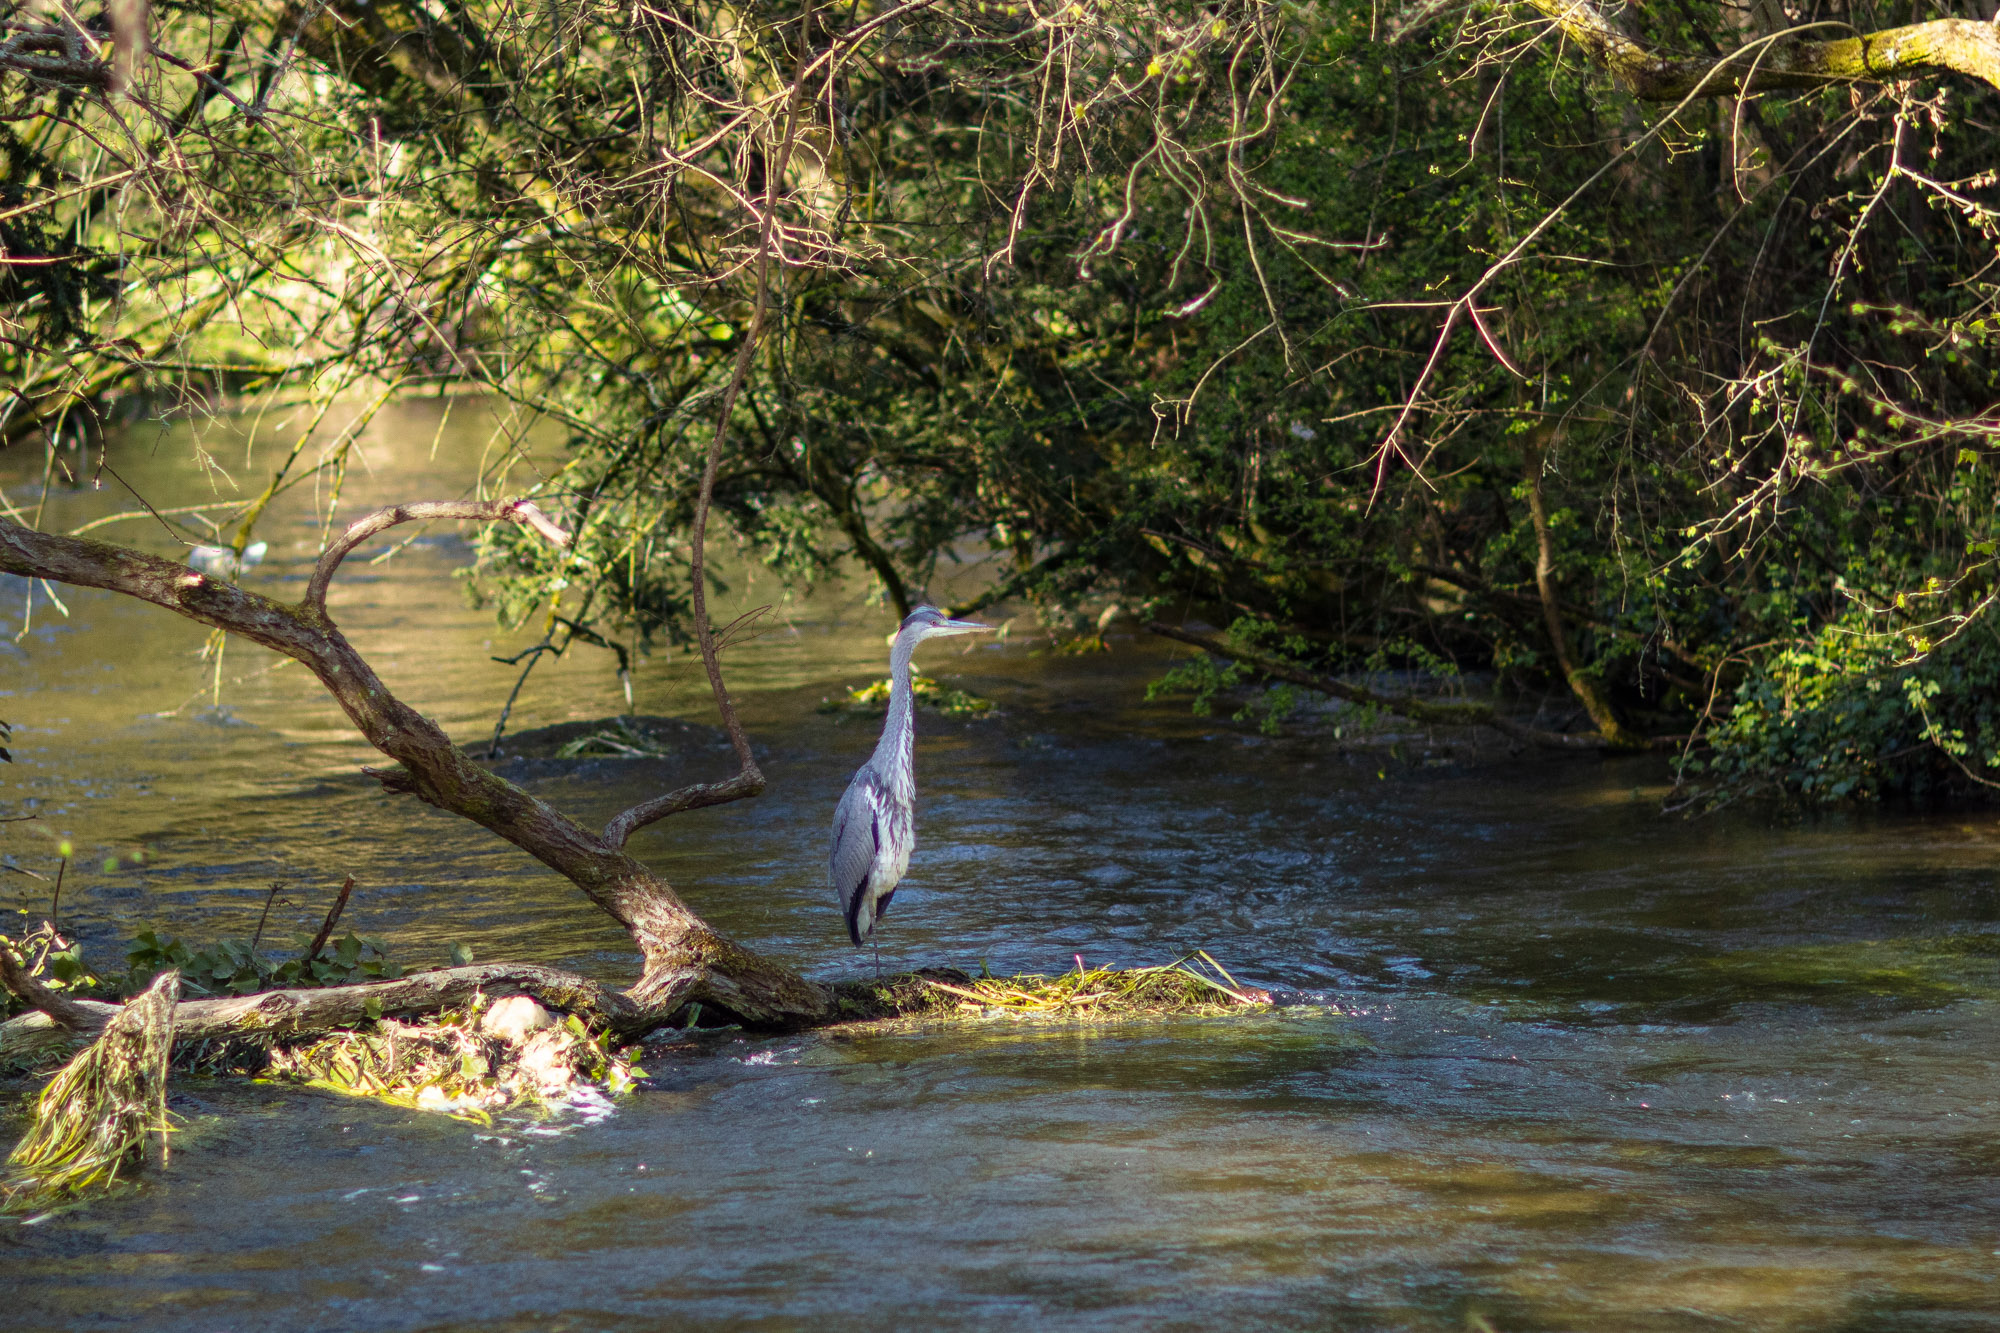 A heron standing at the side of the river